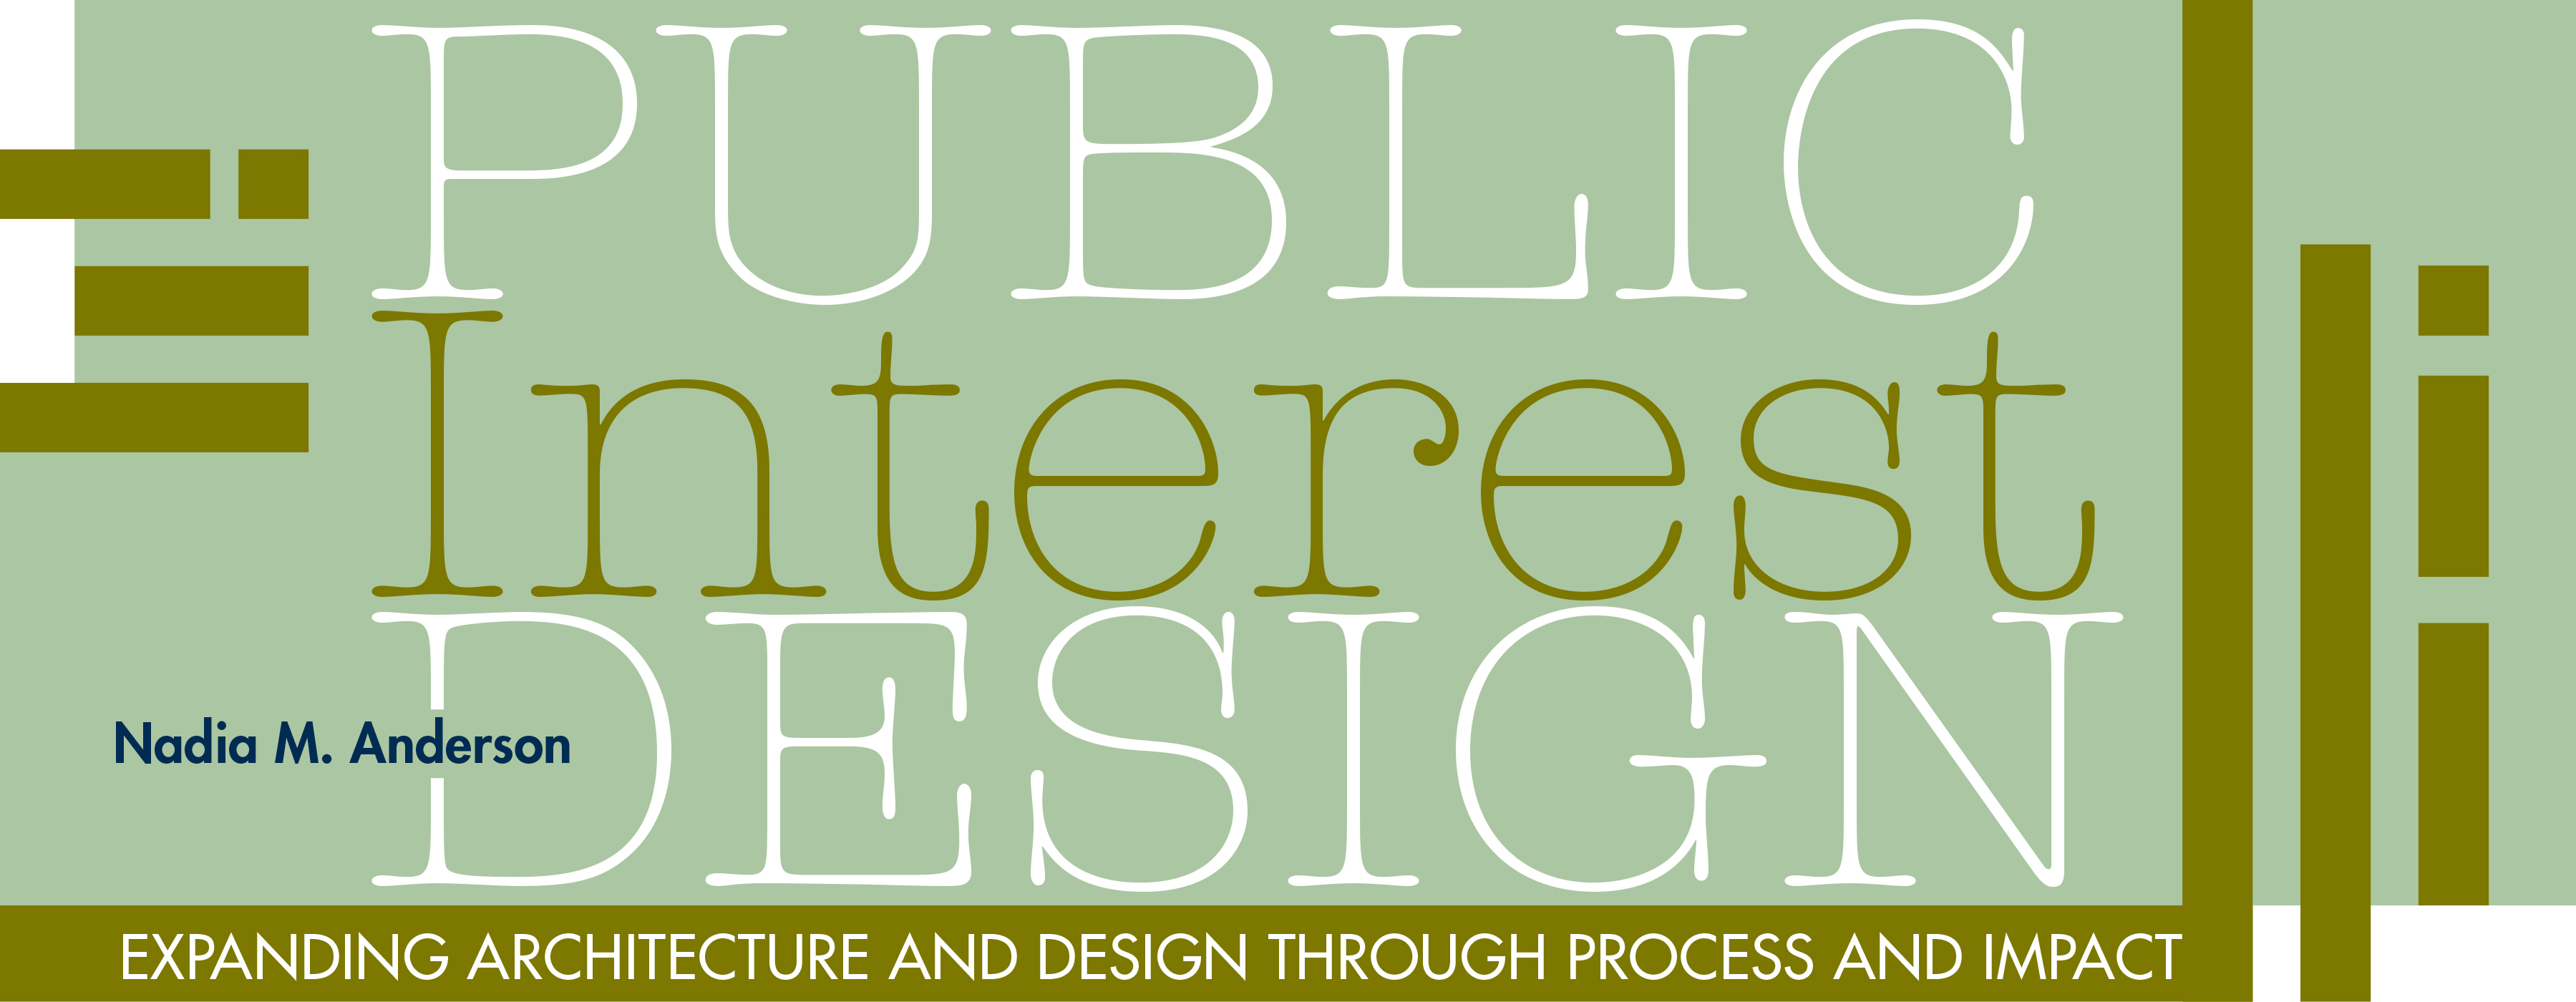 Public Interest Design Expanding Architecture And Design Through